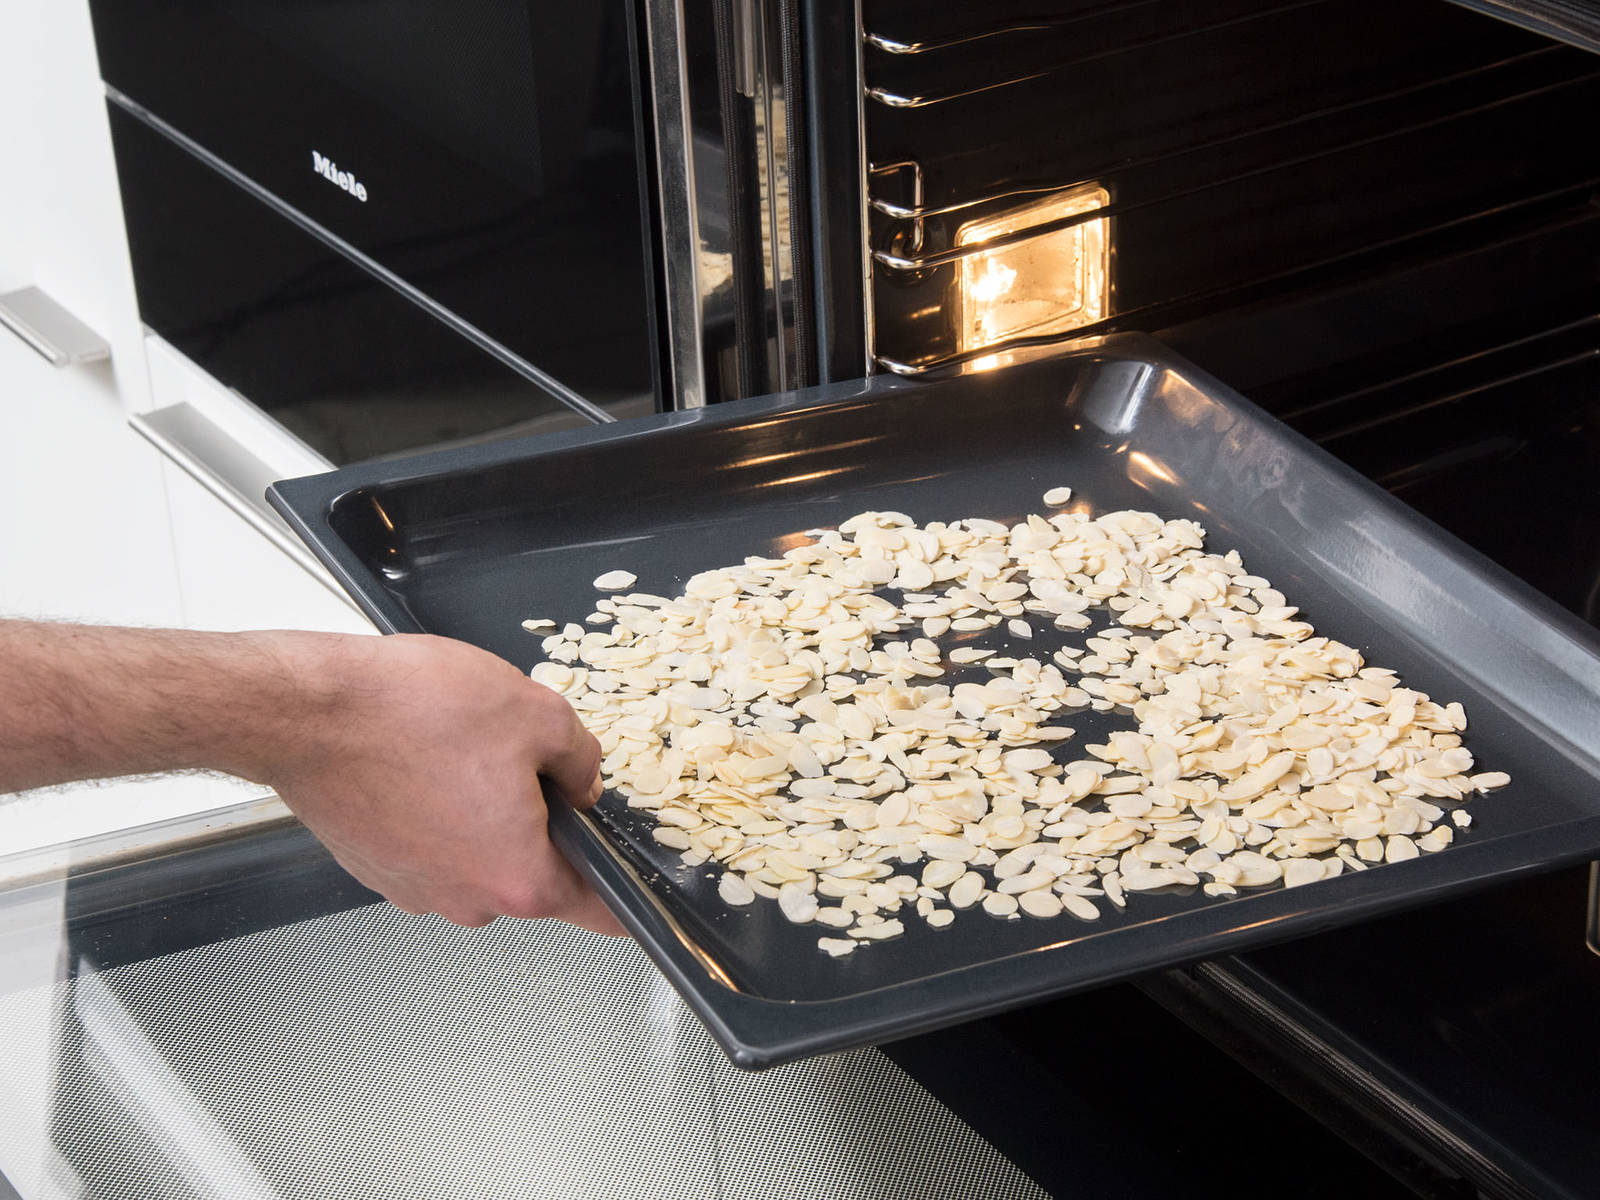 Place sliced almonds on a baking sheet and roast in oven for approx. 10 min. or until golden brown. Remove from oven and let cool.